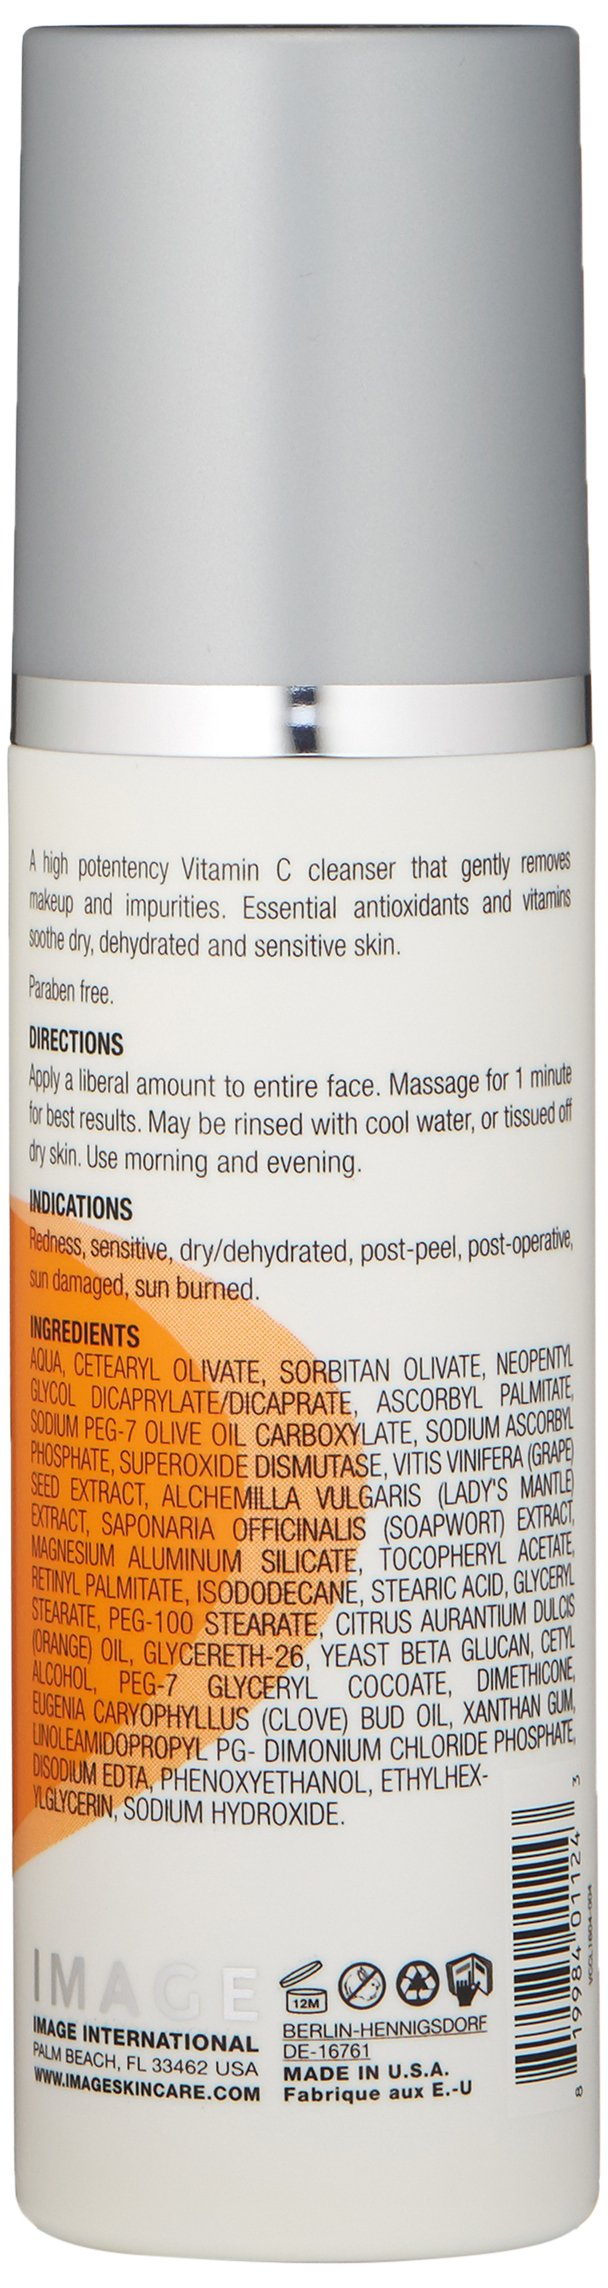 IMAGE Skincare Vital C Hydrating Facial Cleanser, 6 oz. by IMAGE Skincare (Image #2)